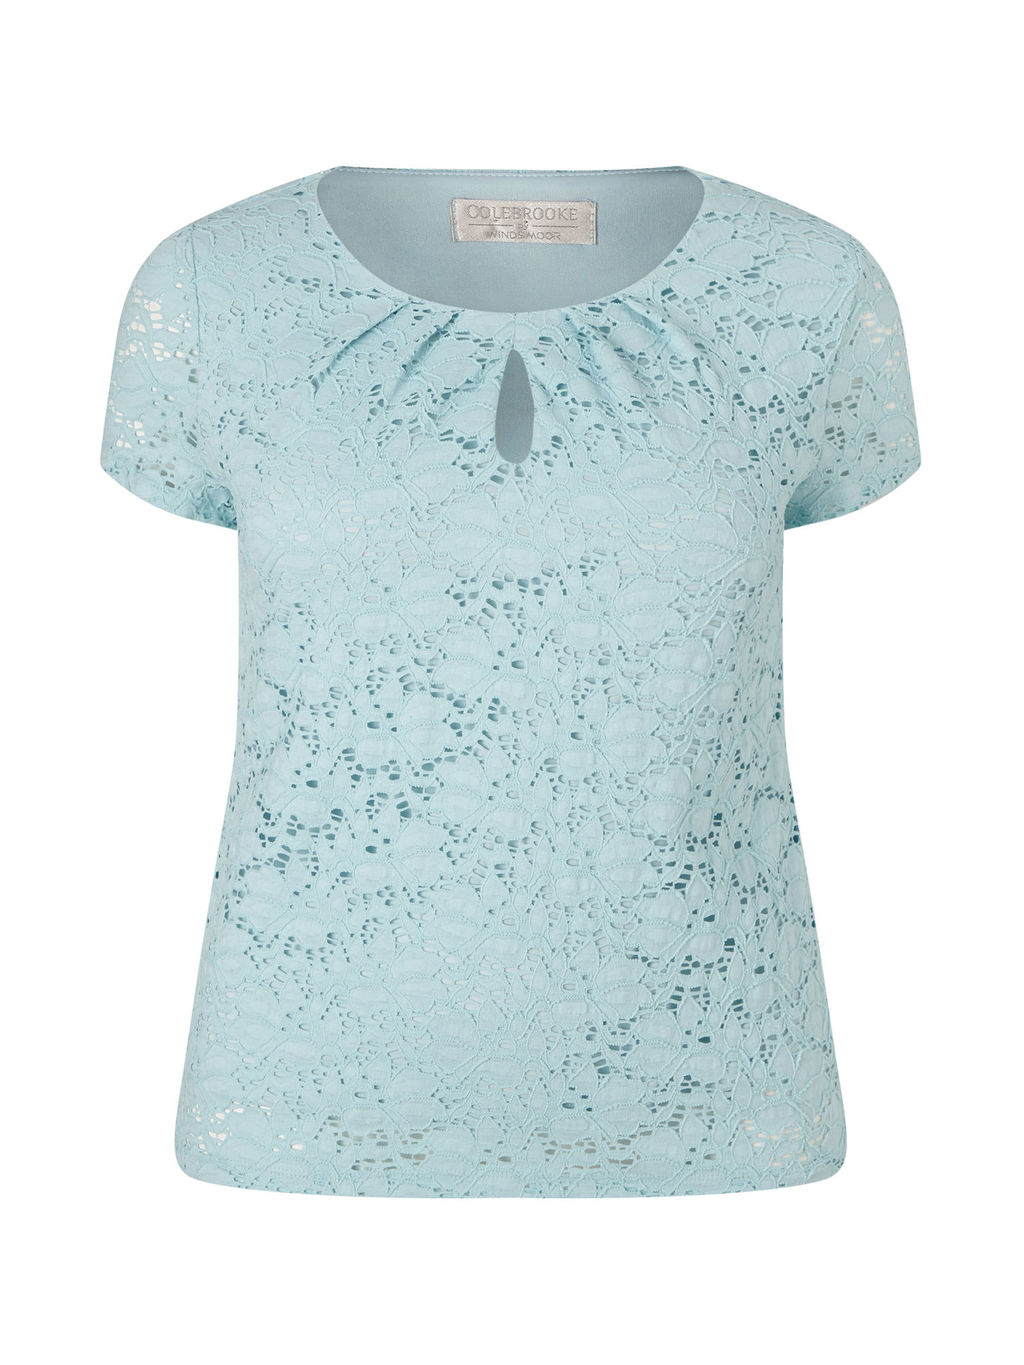 Aqua Lace Top - pattern: plain; bust detail: subtle bust detail; predominant colour: turquoise; occasions: casual, creative work; length: standard; style: top; neckline: peep hole neckline; fibres: polyester/polyamide - 100%; fit: body skimming; sleeve length: short sleeve; sleeve style: standard; pattern type: fabric; texture group: other - light to midweight; embellishment: lace; season: s/s 2016; wardrobe: highlight